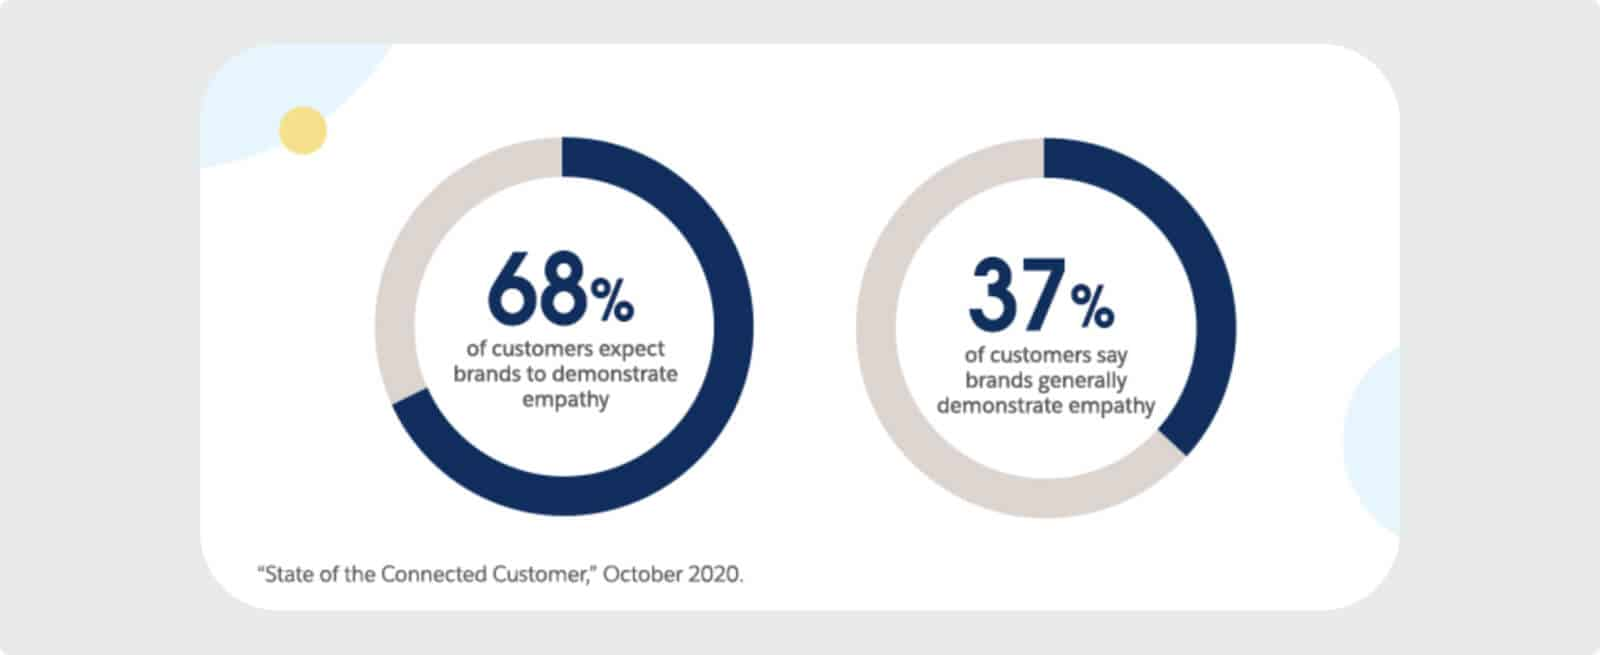 Consumers expect brands to demonstrate empathy.